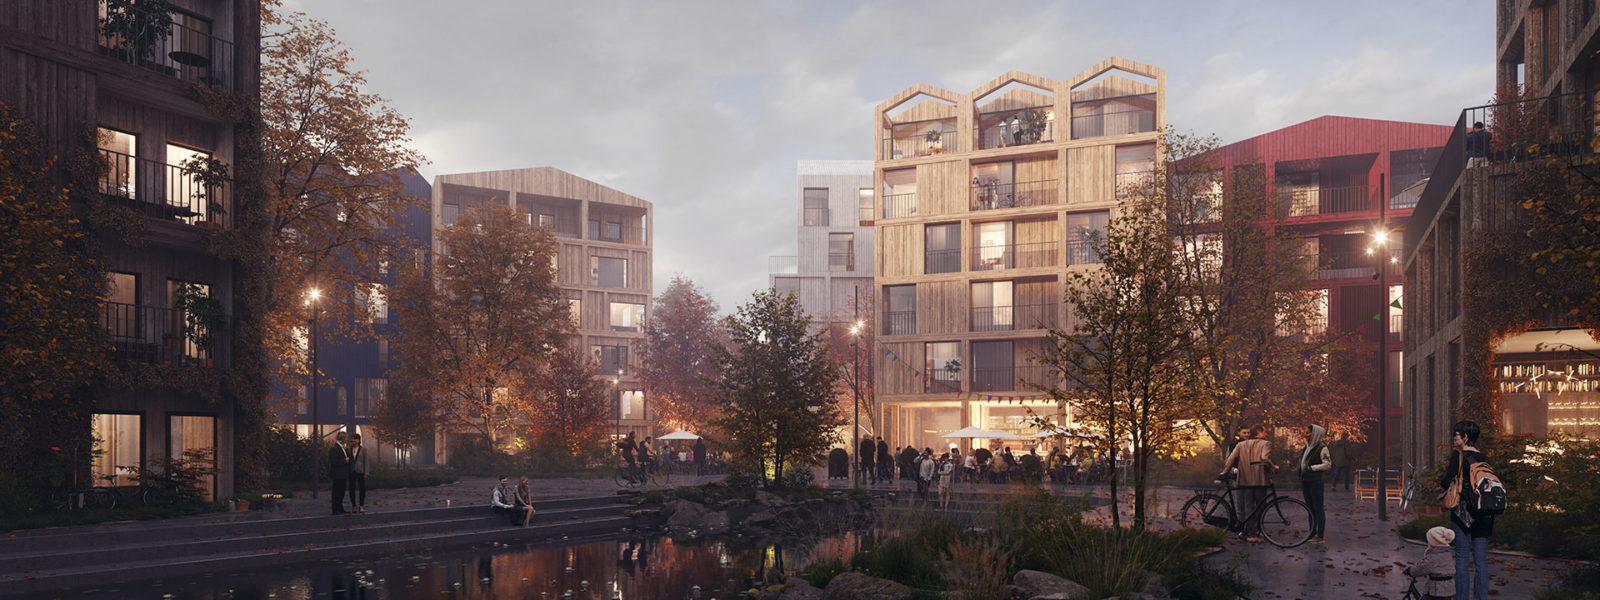 Henning Larsen to design Fælledby, Copenhagen's first all timber neighborhood